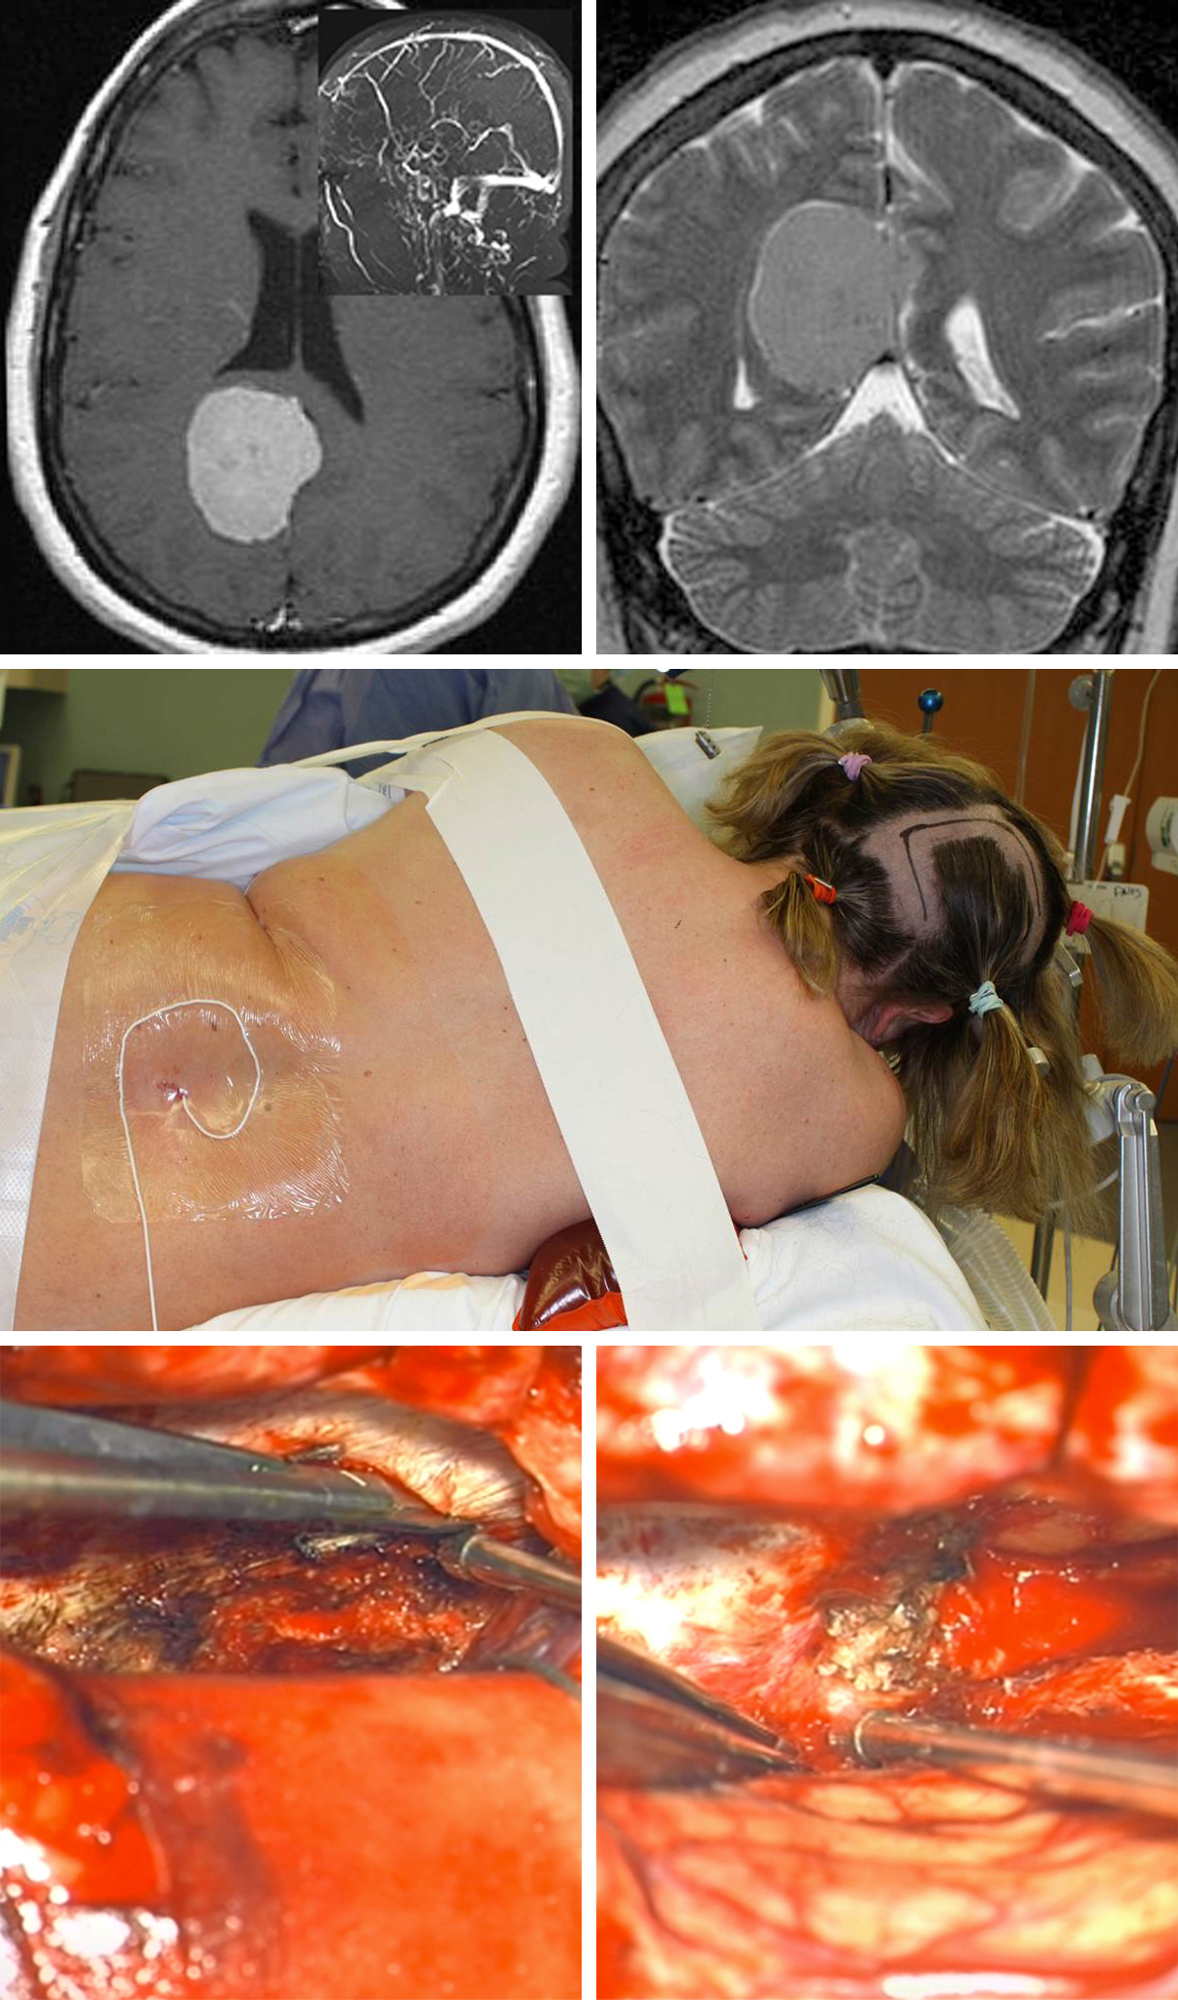 Figure 10: A more straightforward posterior parafalcine/anterior falcotentorial meningioma is shown. MR venogram demonstrated patency of all the deep veins and straight sinus (top row of images). The patient underwent an interhemispheric parieto-occipital craniotomy and transfalcine removal in the park bench position. A lumbar drain was utilized early in surgery for smooth entry into the interhemispheric space. The tumor side was placed in the dependent position to facilitate the use of gravity retraction (middle row of image). The images in the bottom row show the transfalcine incision and the final result of tumor removal away from the straight sinus.